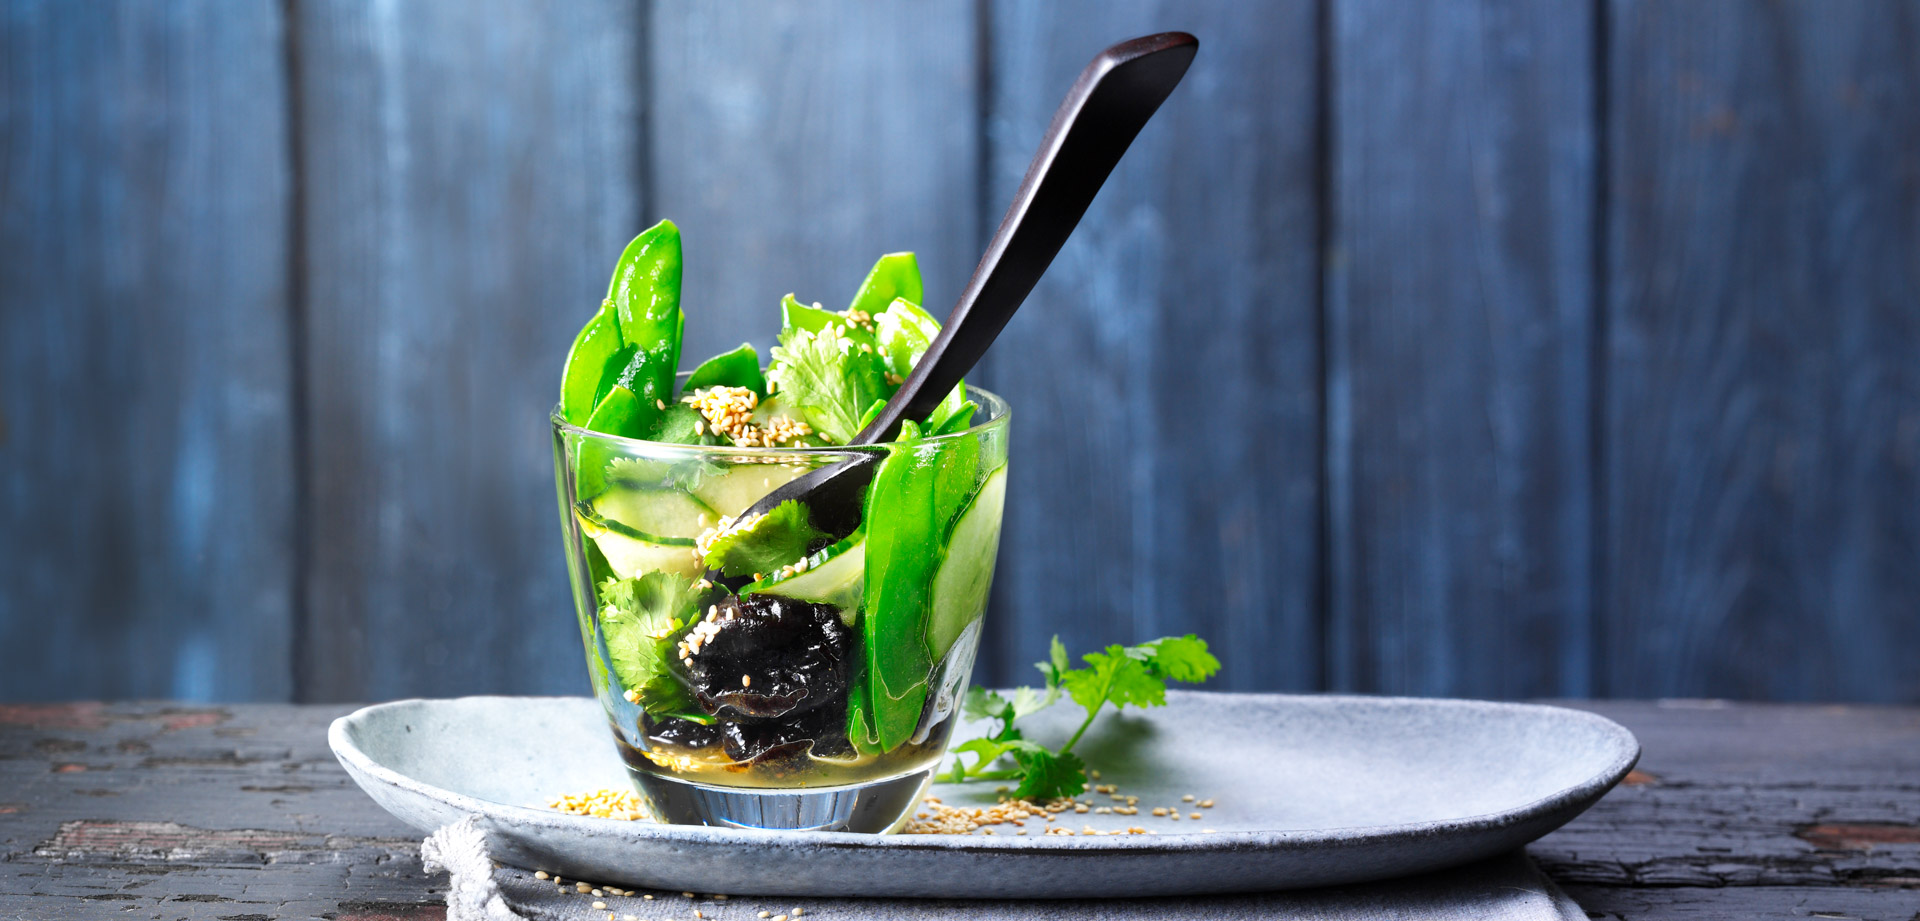 <p>Mangetout (manj-too) is a French salad made with young garden peas. The easiest way to make this salad when you don't have access to garden peas is to use tender snow peas or snap peas. It's a refreshing salad and makes a great accompaniment to any meal. You can use prunes in two ways: drizzle […]</p>